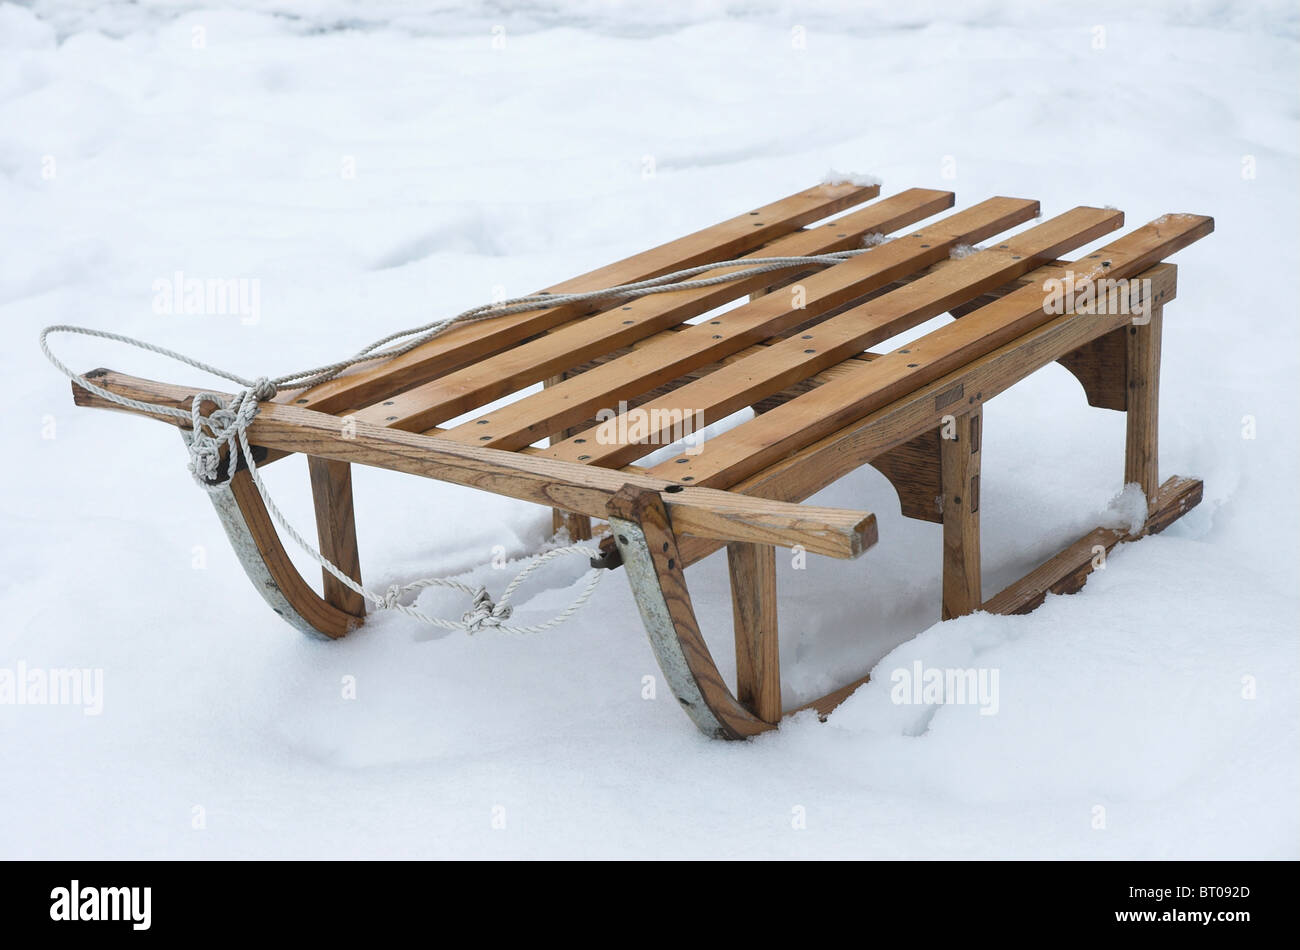 A traditional wooden sledge on snow - Stock Image